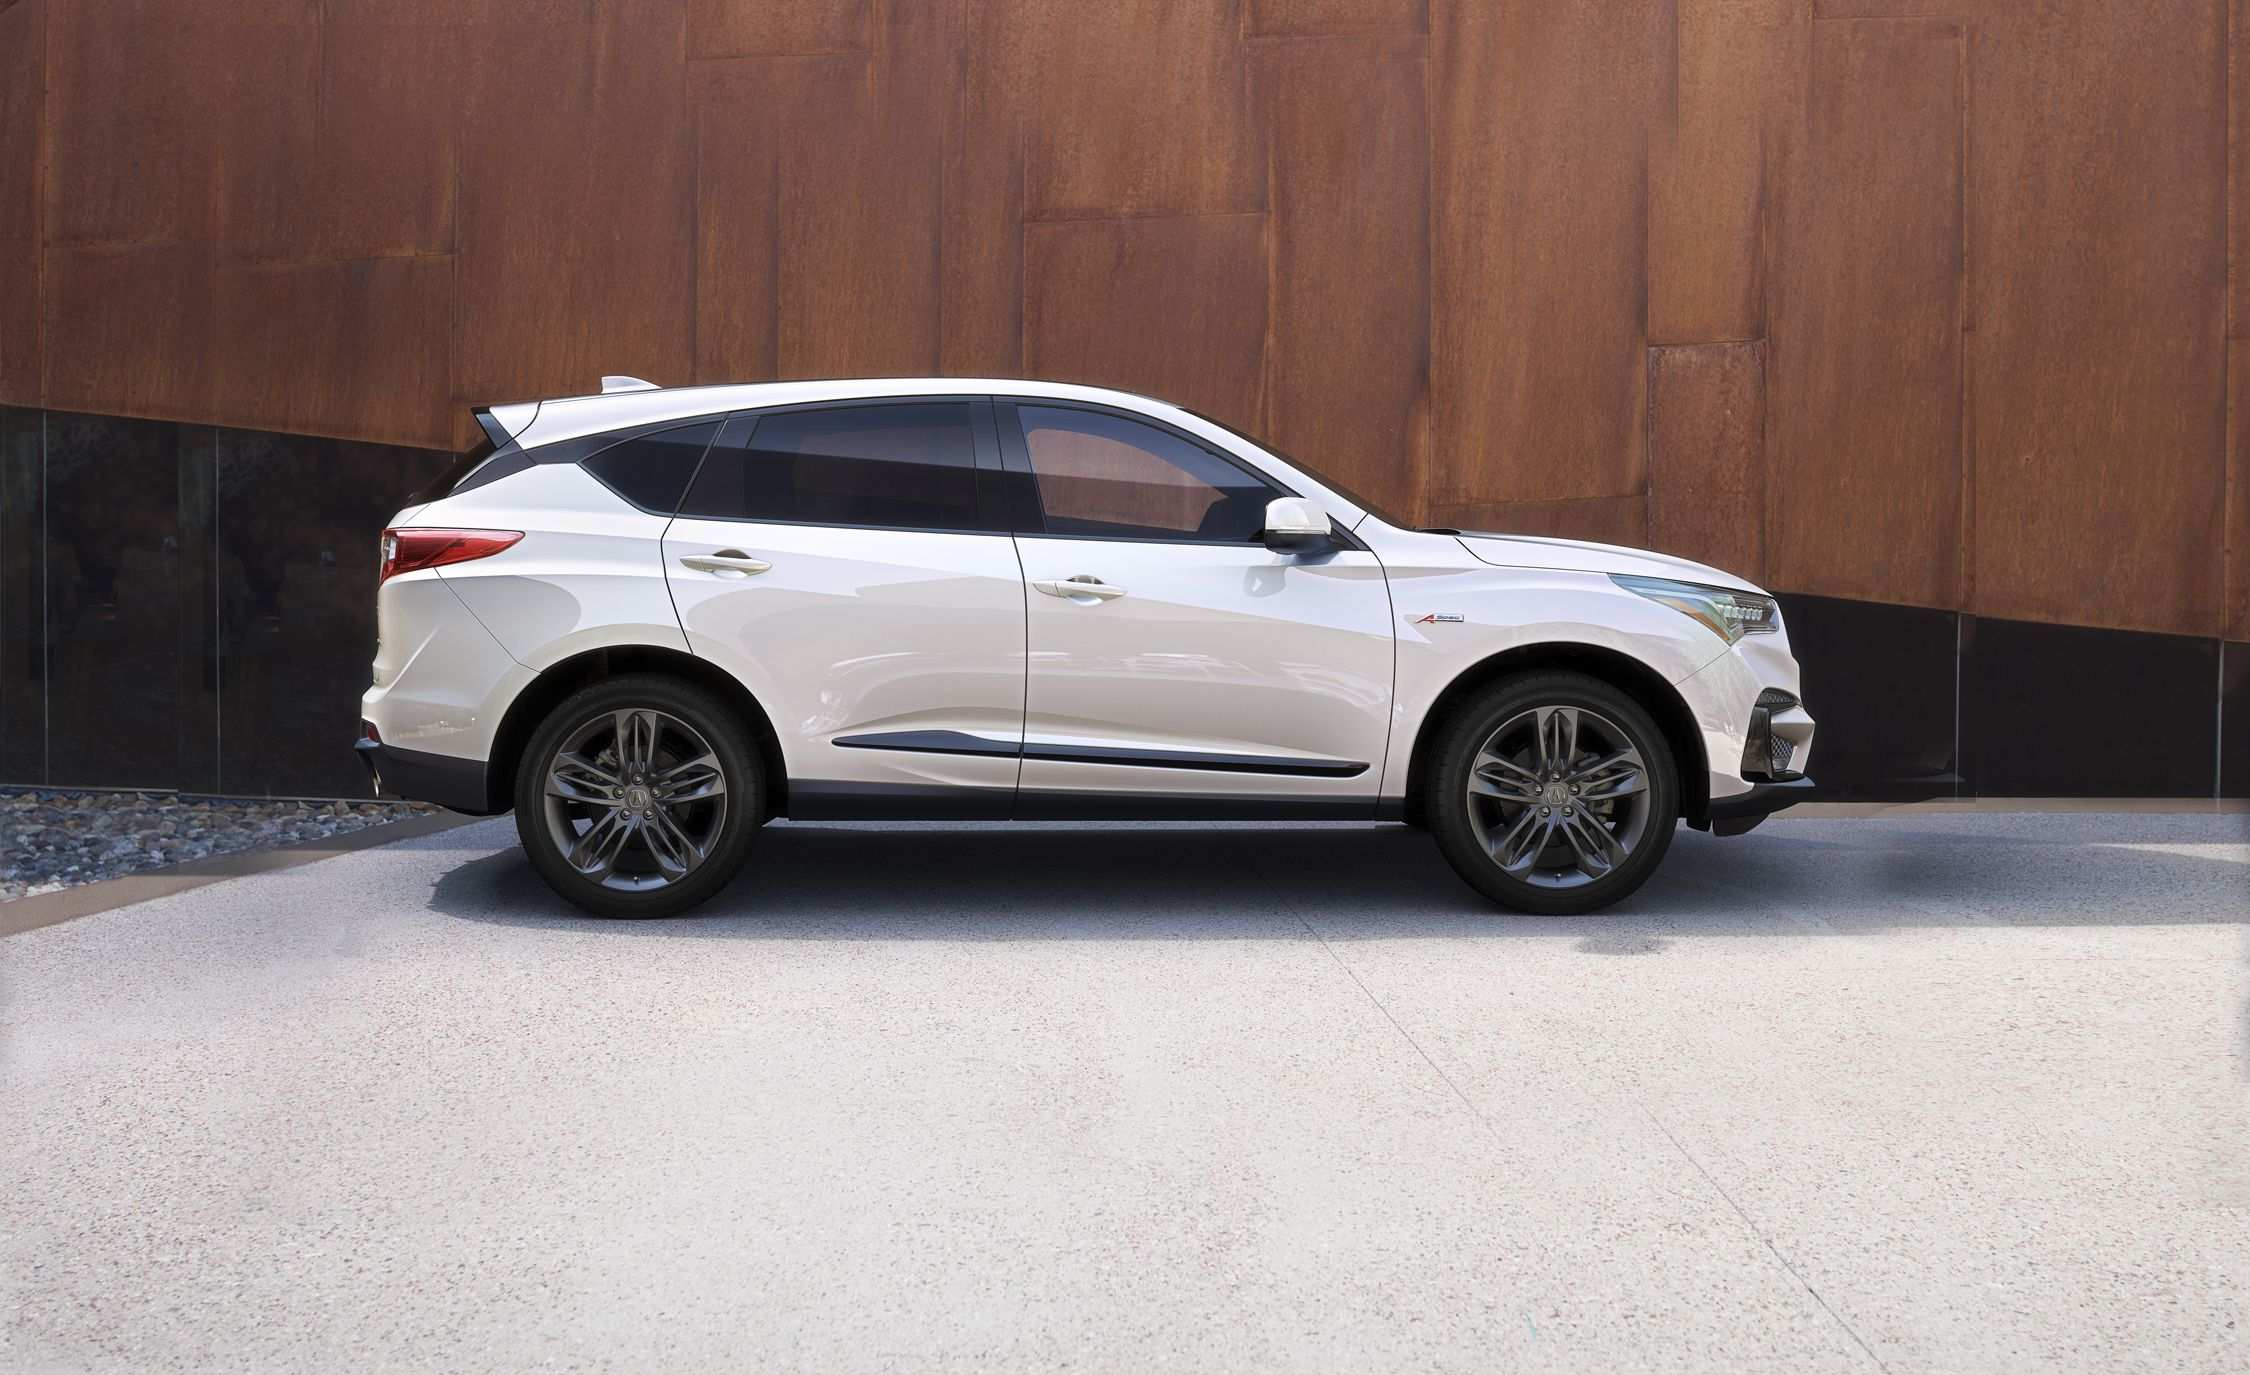 82 New The 2019 Acura Rdx Quarter Mile Price And Review Configurations by The 2019 Acura Rdx Quarter Mile Price And Review